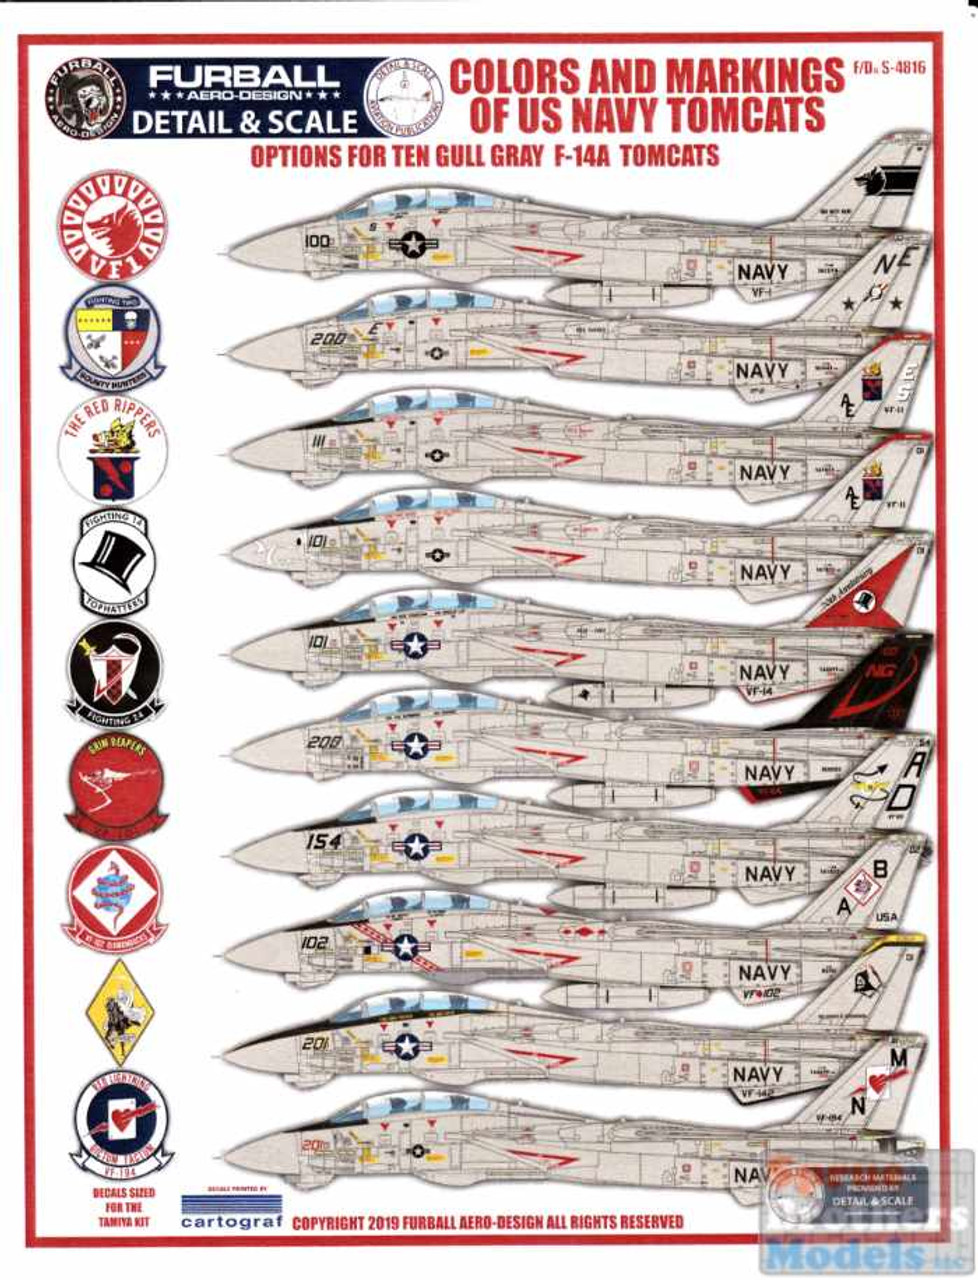 FURDS4816 1:48 Furball Aero Design Gull Gray F-14A Tomcats 'Colors and Markings of US Navy Tomcats' Part VIII